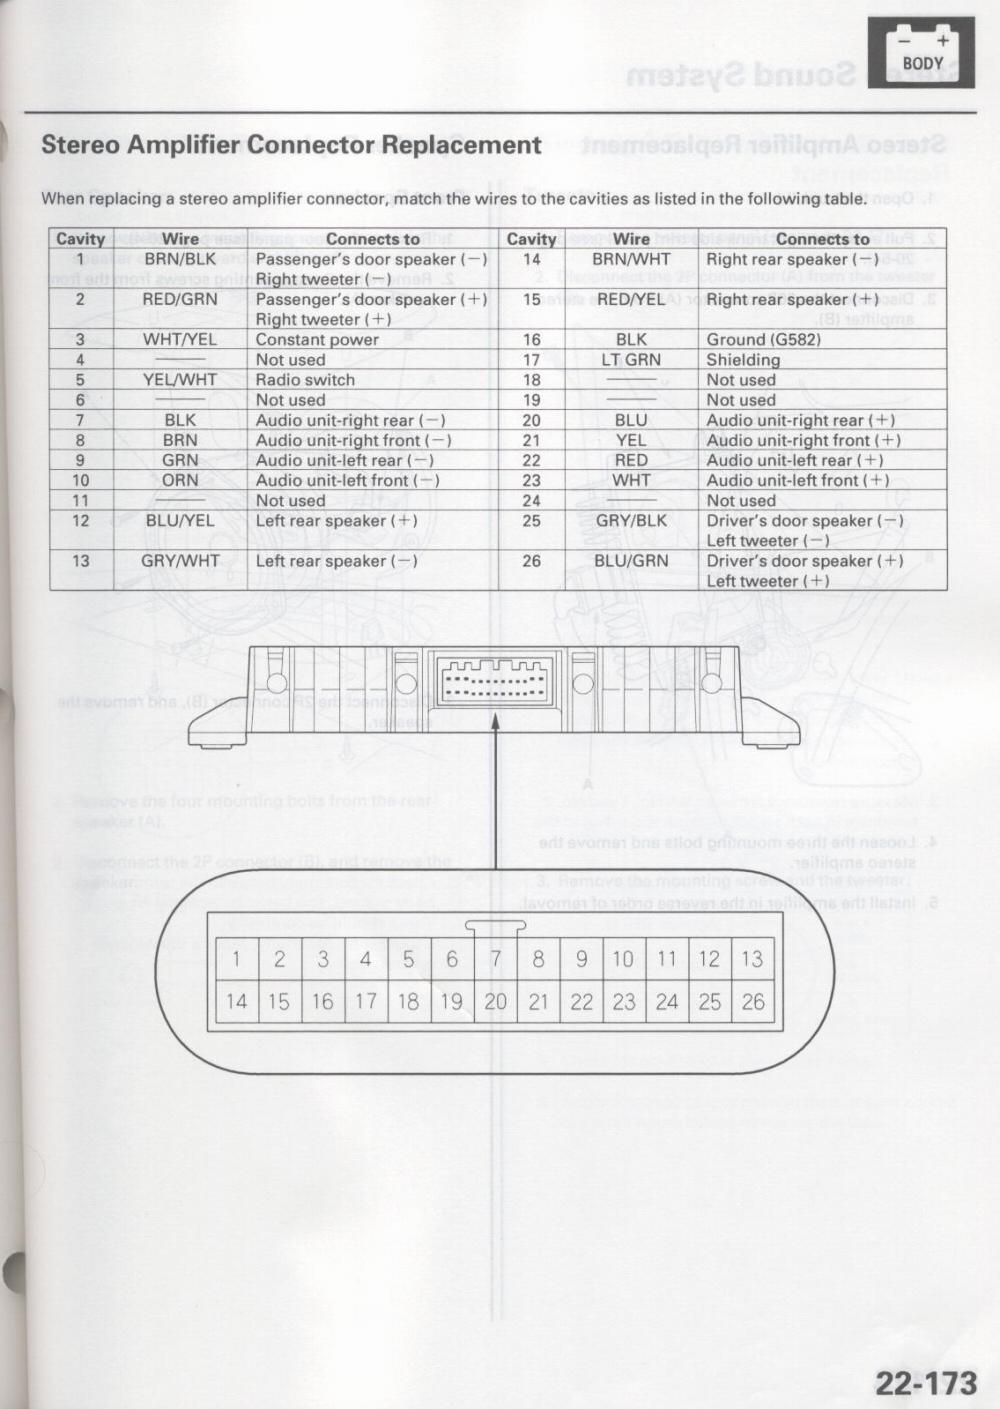 Car radio stereo audio wiring diagram autoradio connector wire car radio stereo audio wiring diagram autoradio connector wire installation schematic schema esquema de conexiones anschlusskammern konektor cheapraybanclubmaster Image collections